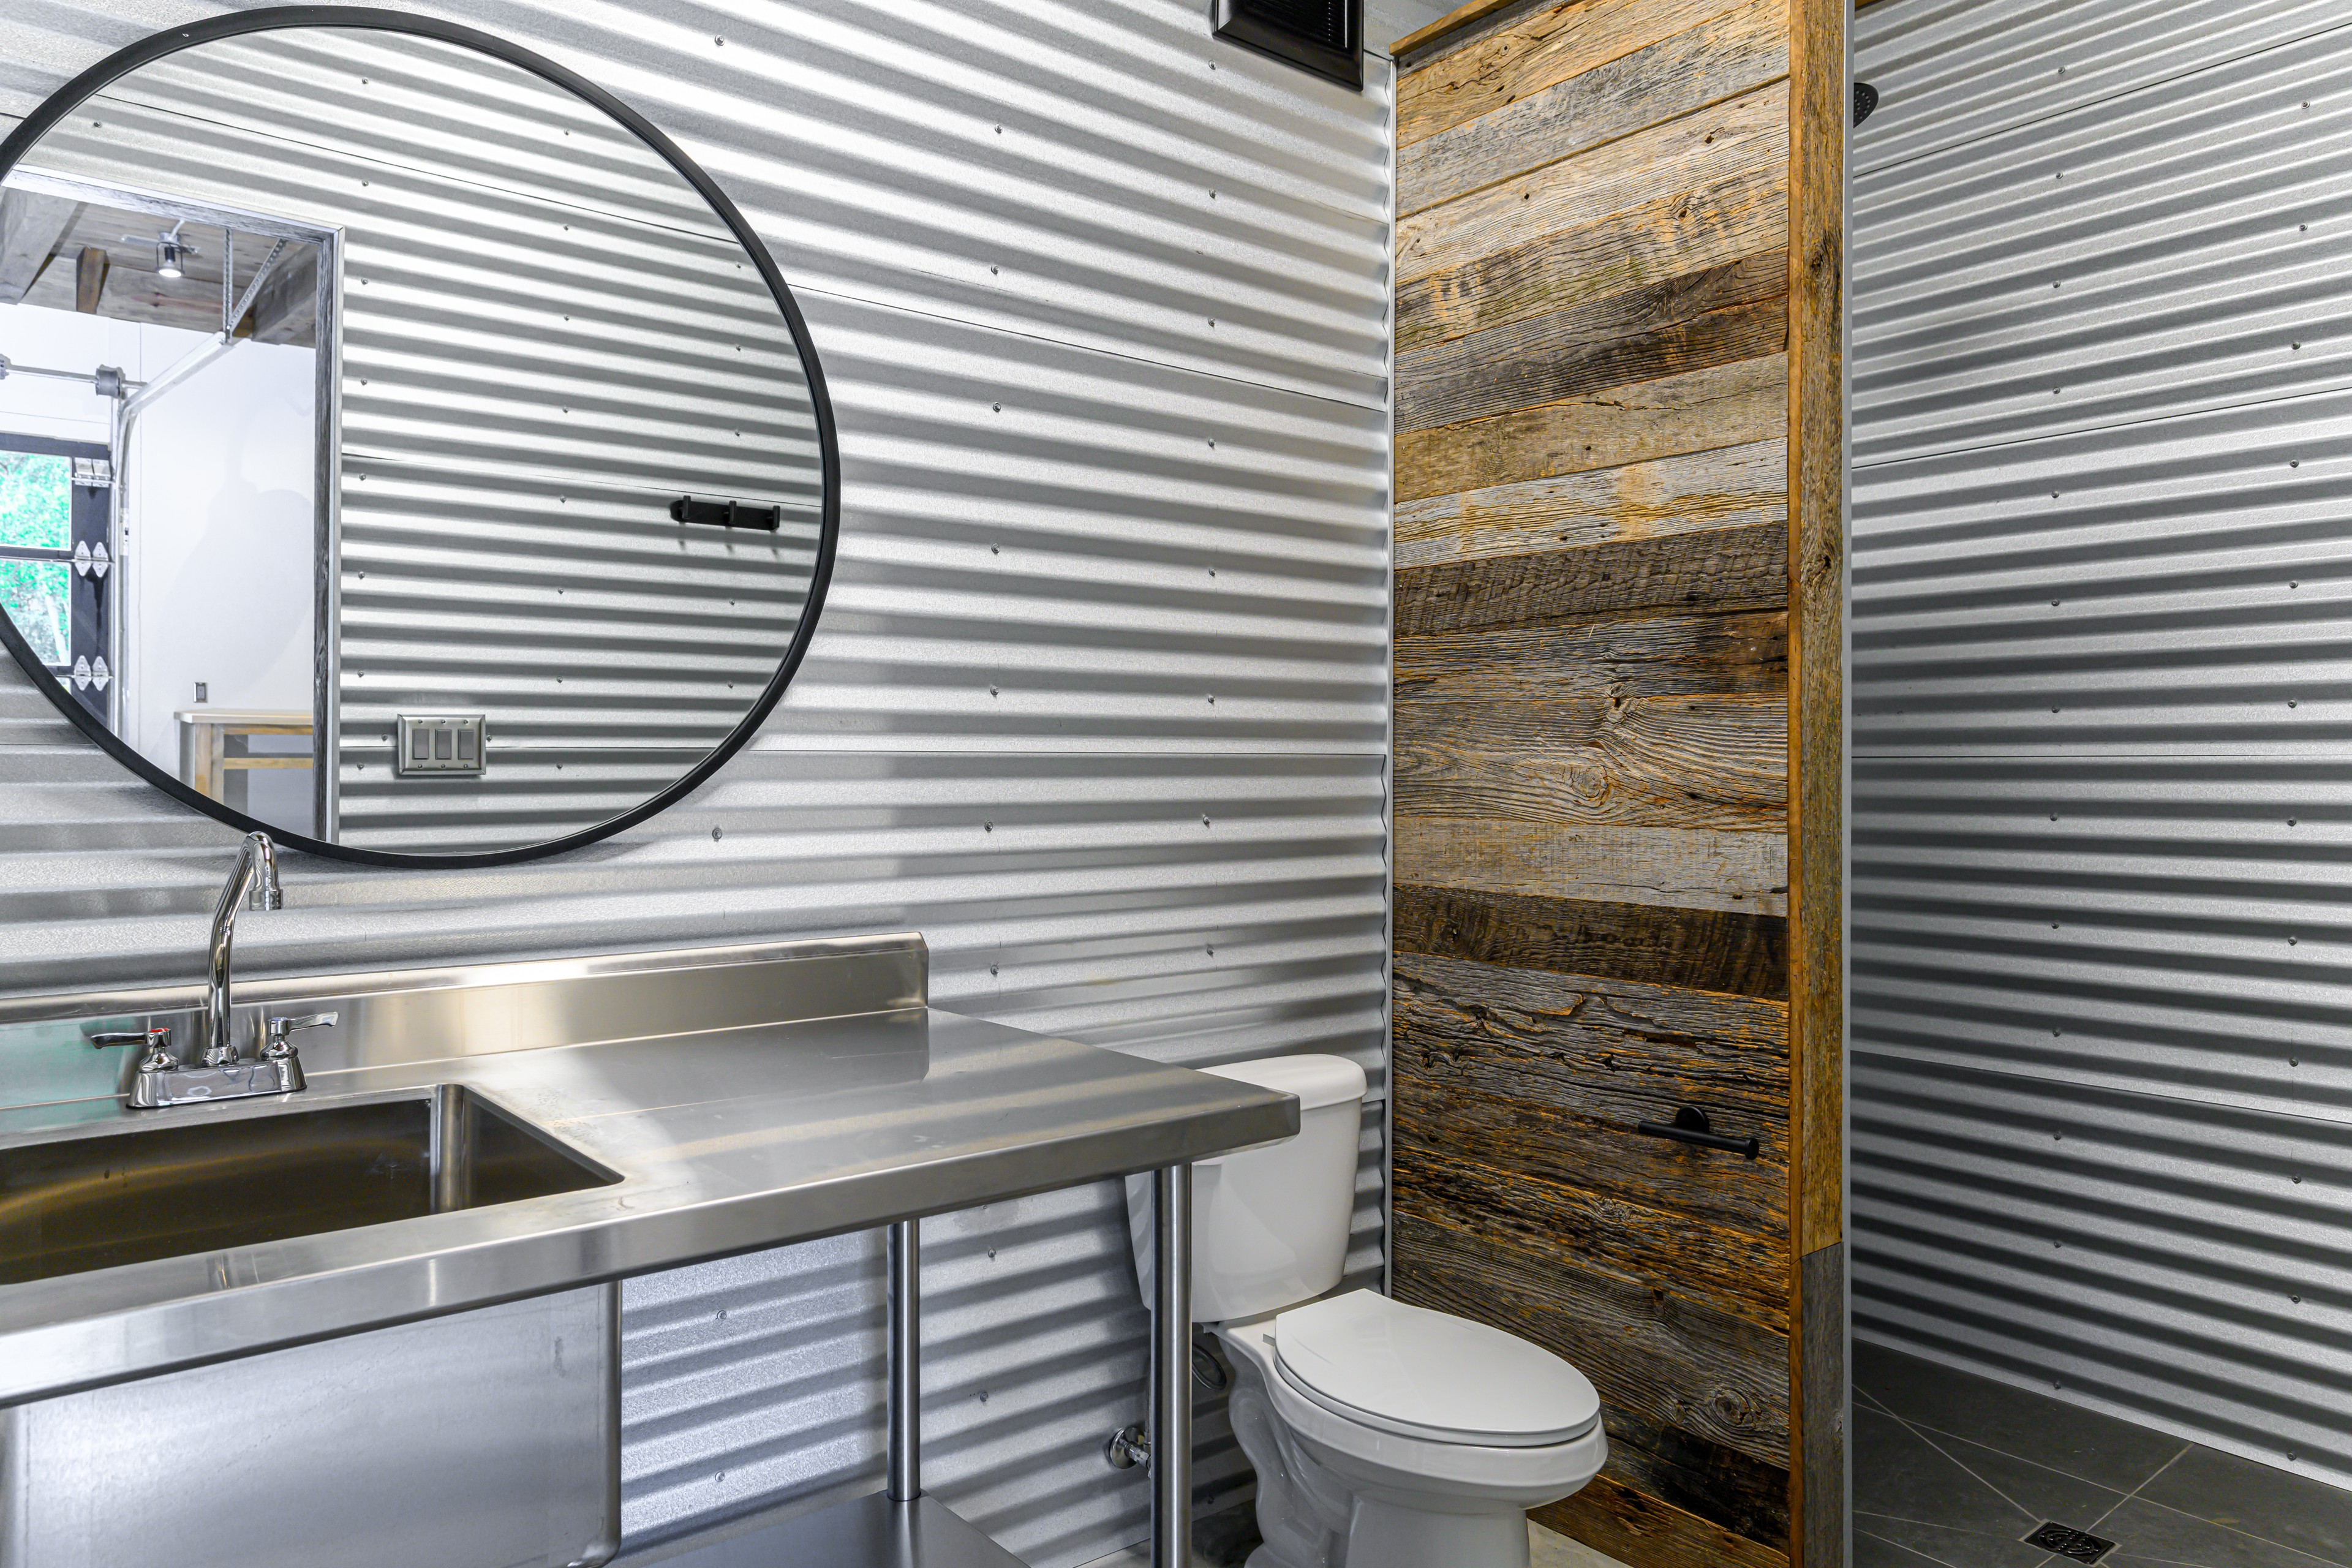 With Stainless Steel Countertops, Stainless Steel Bathroom